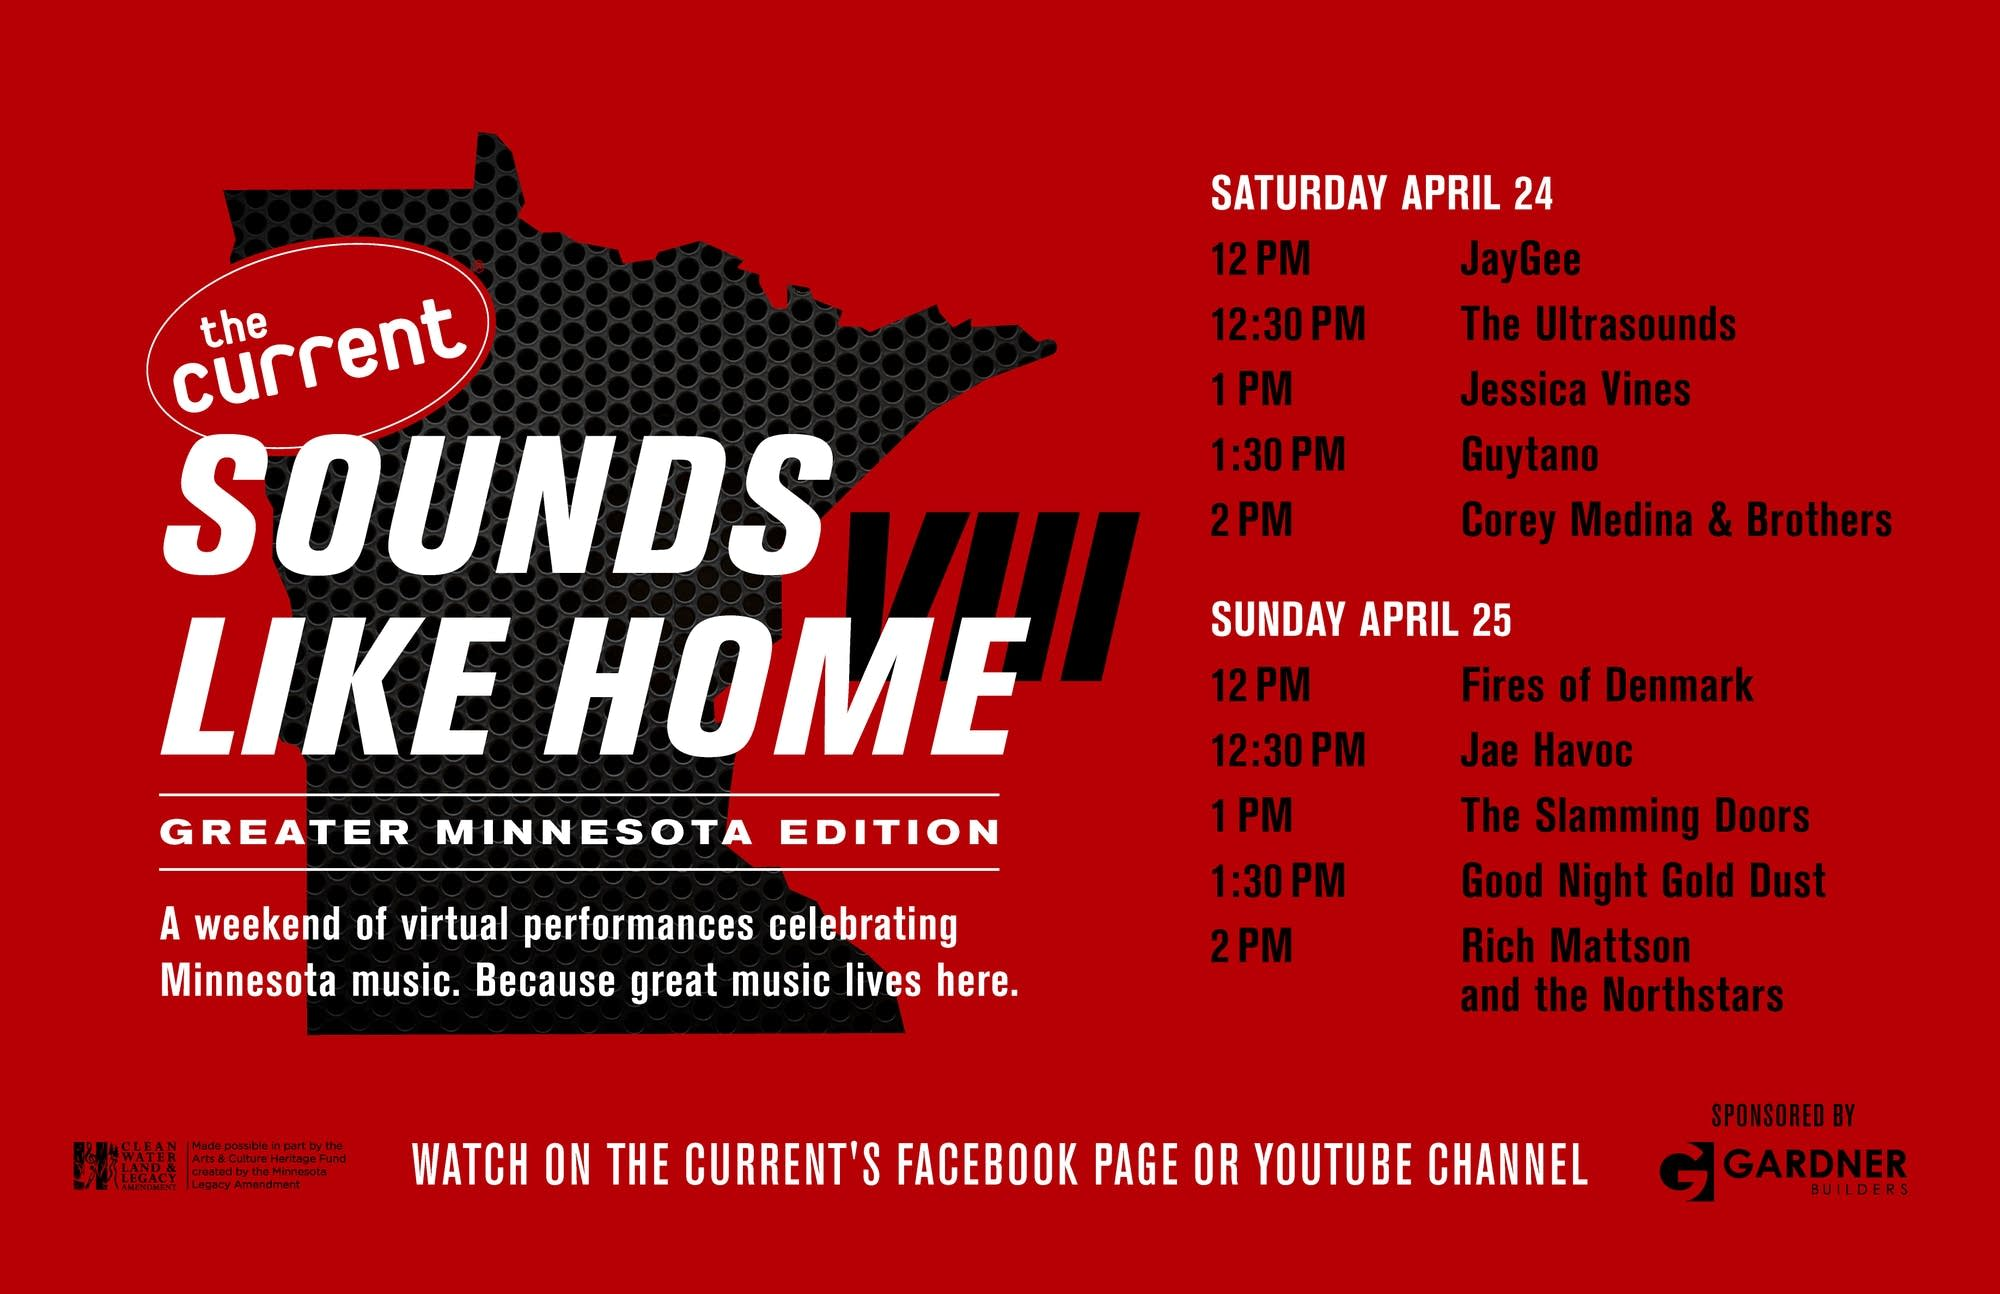 Sounds Like Home VIII schedule poster